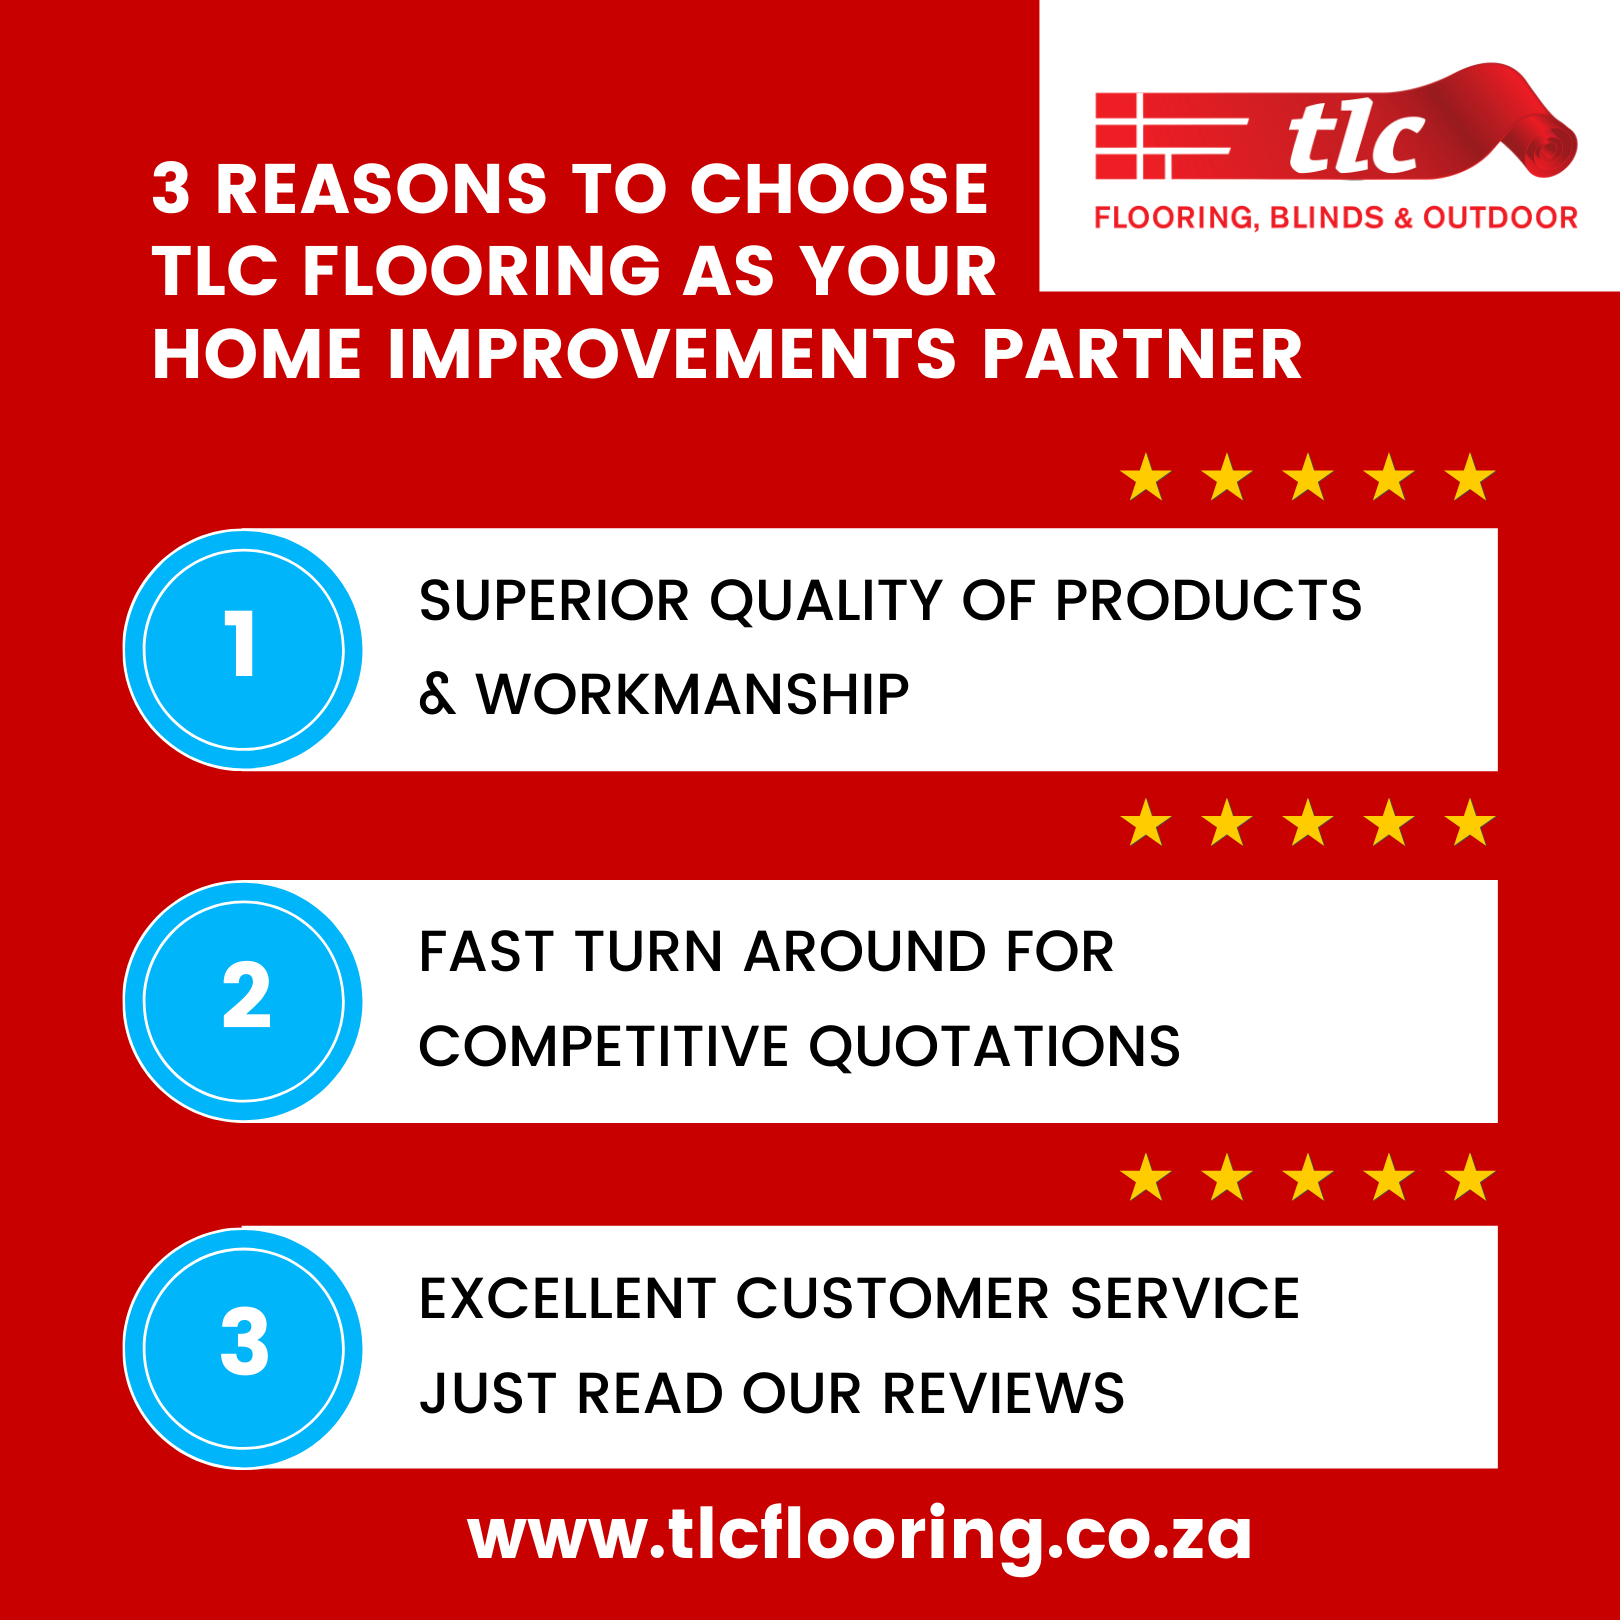 3 REASONS TO CHOOSE TLC FLOORING AS YOUR best flooring company in cape town